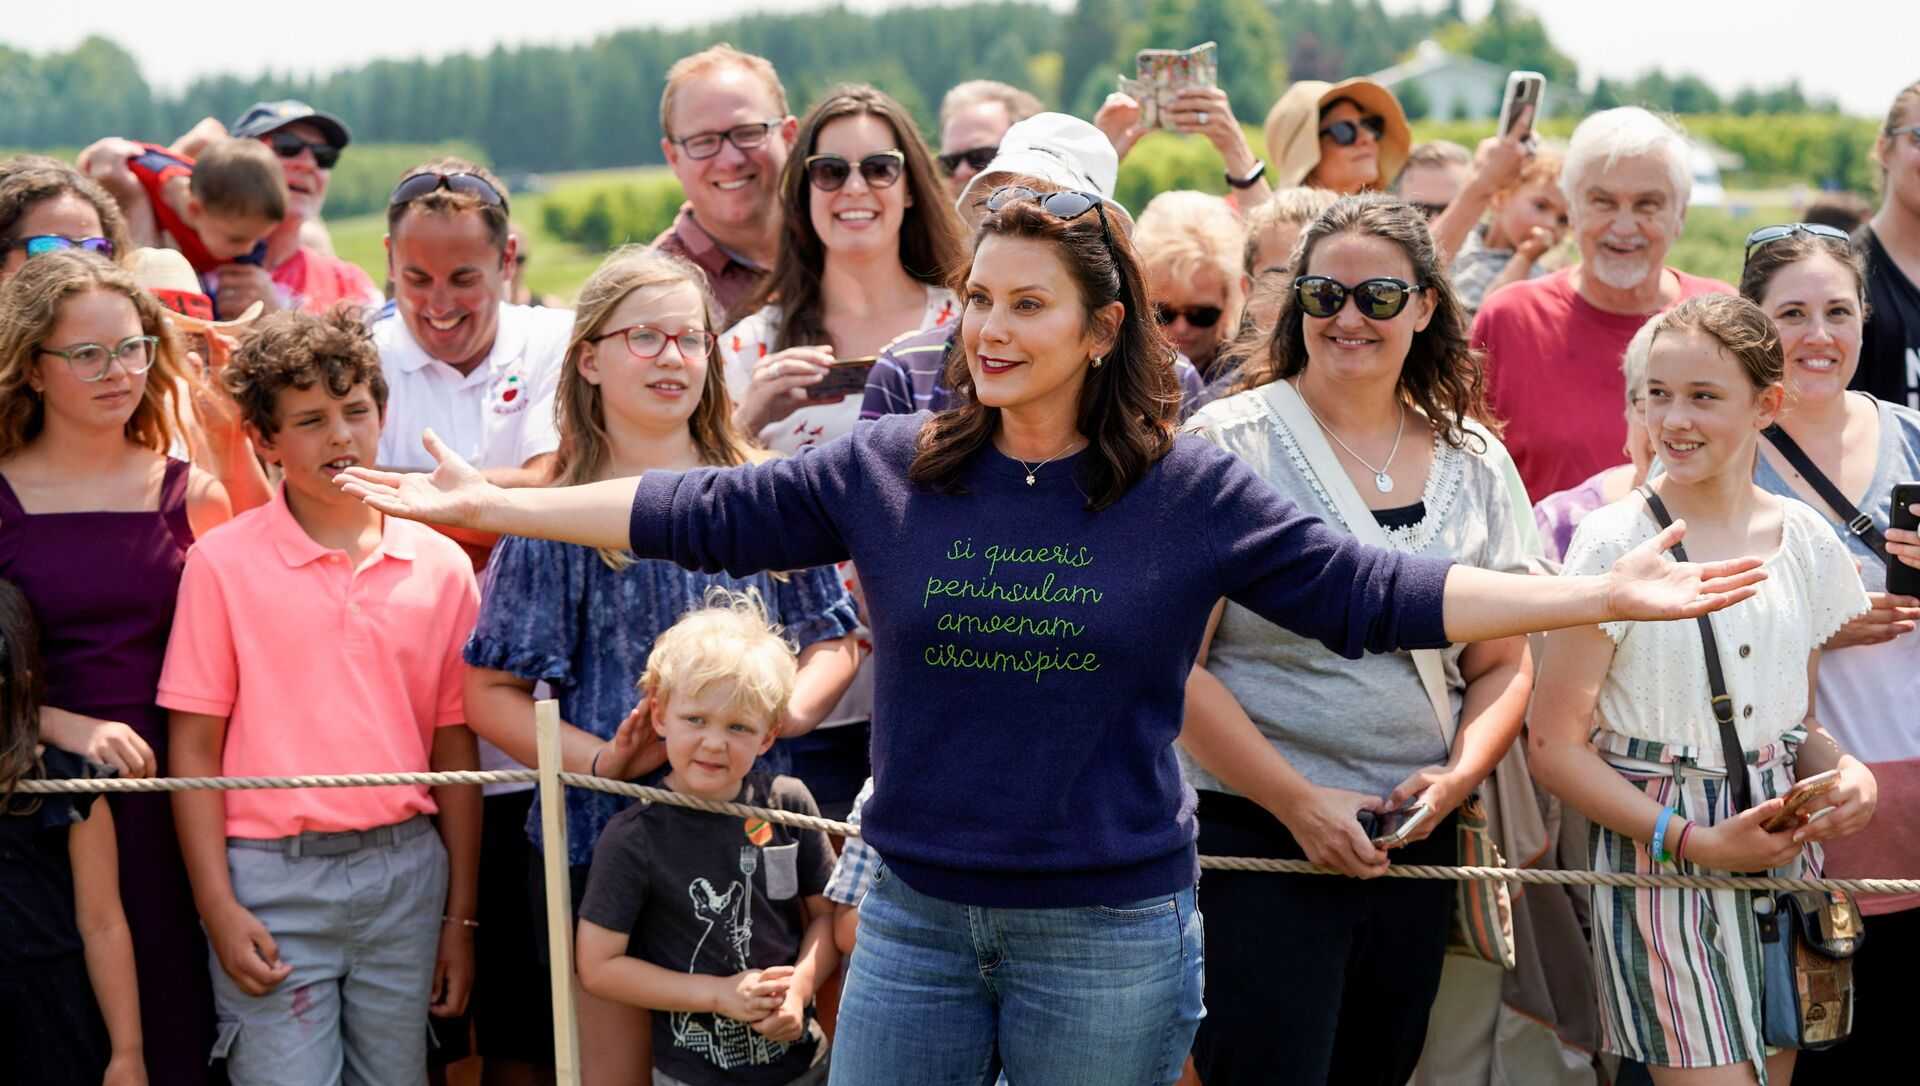 Michigan's Governor Gretchen Whitmer gestures in front of supporters after touring King Orchards farm in Central Lake, Michigan, 3 July 2021. - Sputnik International, 1920, 24.07.2021